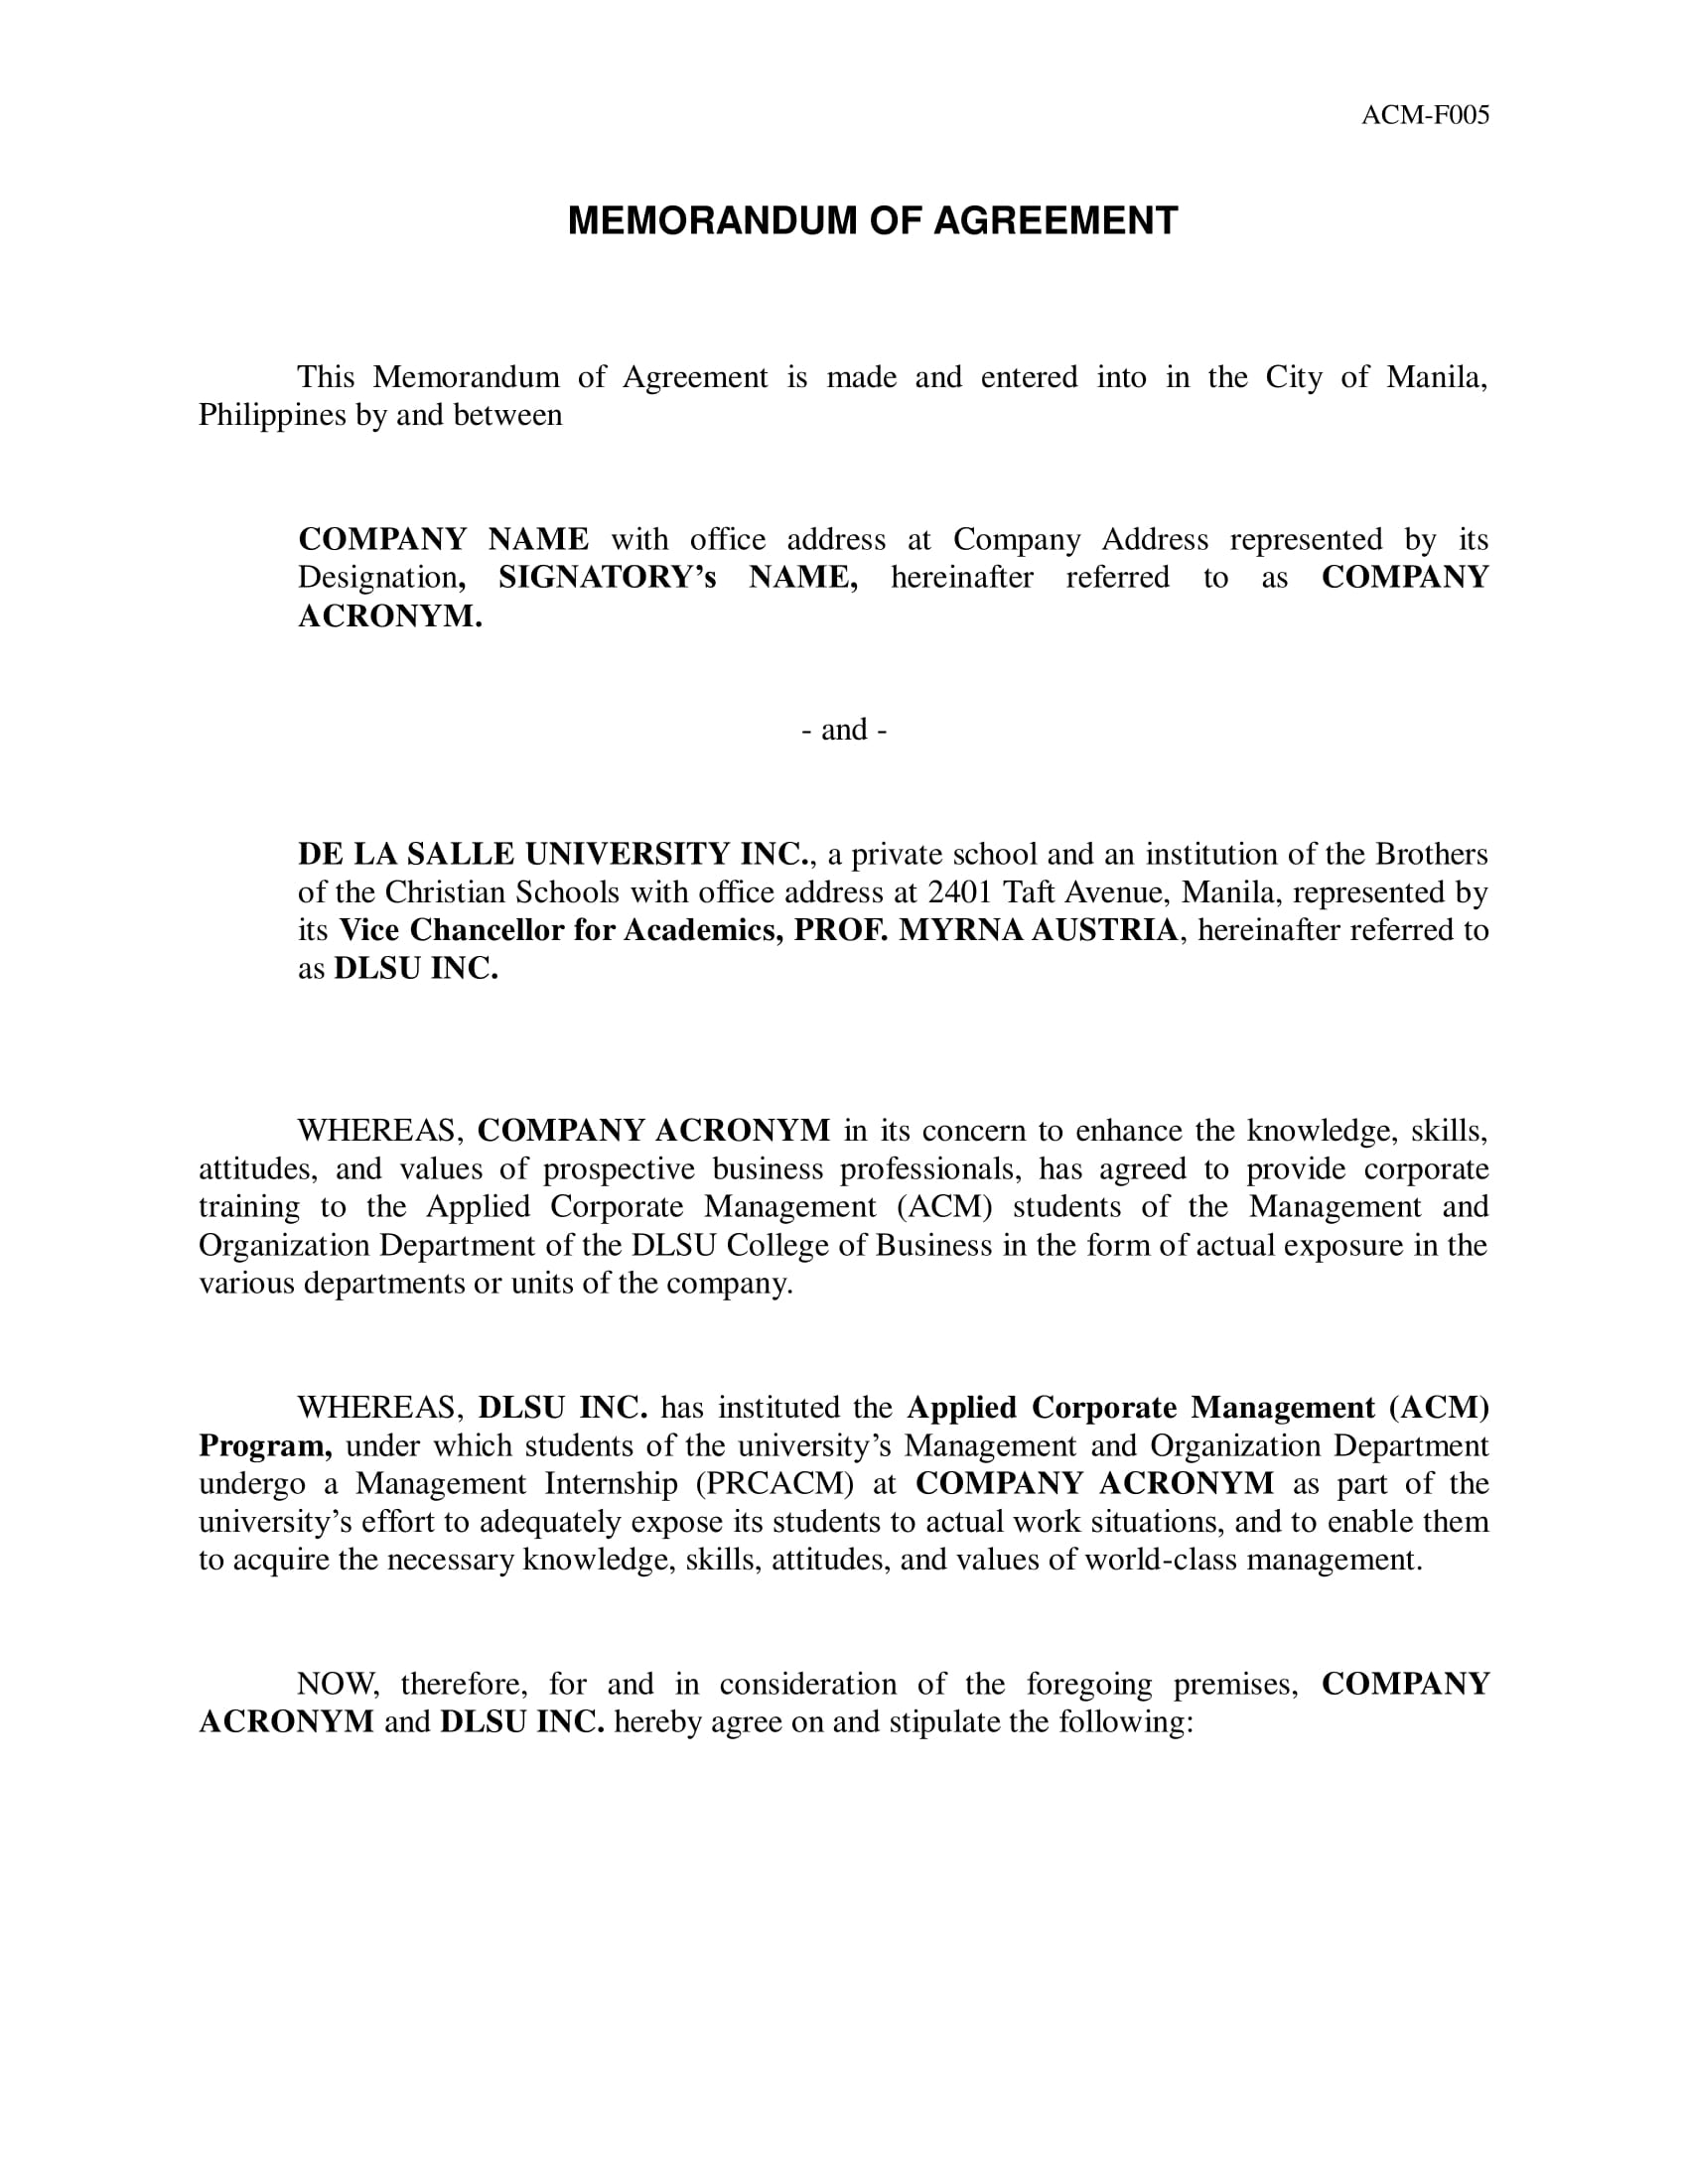 detailed memorandum of agreement example